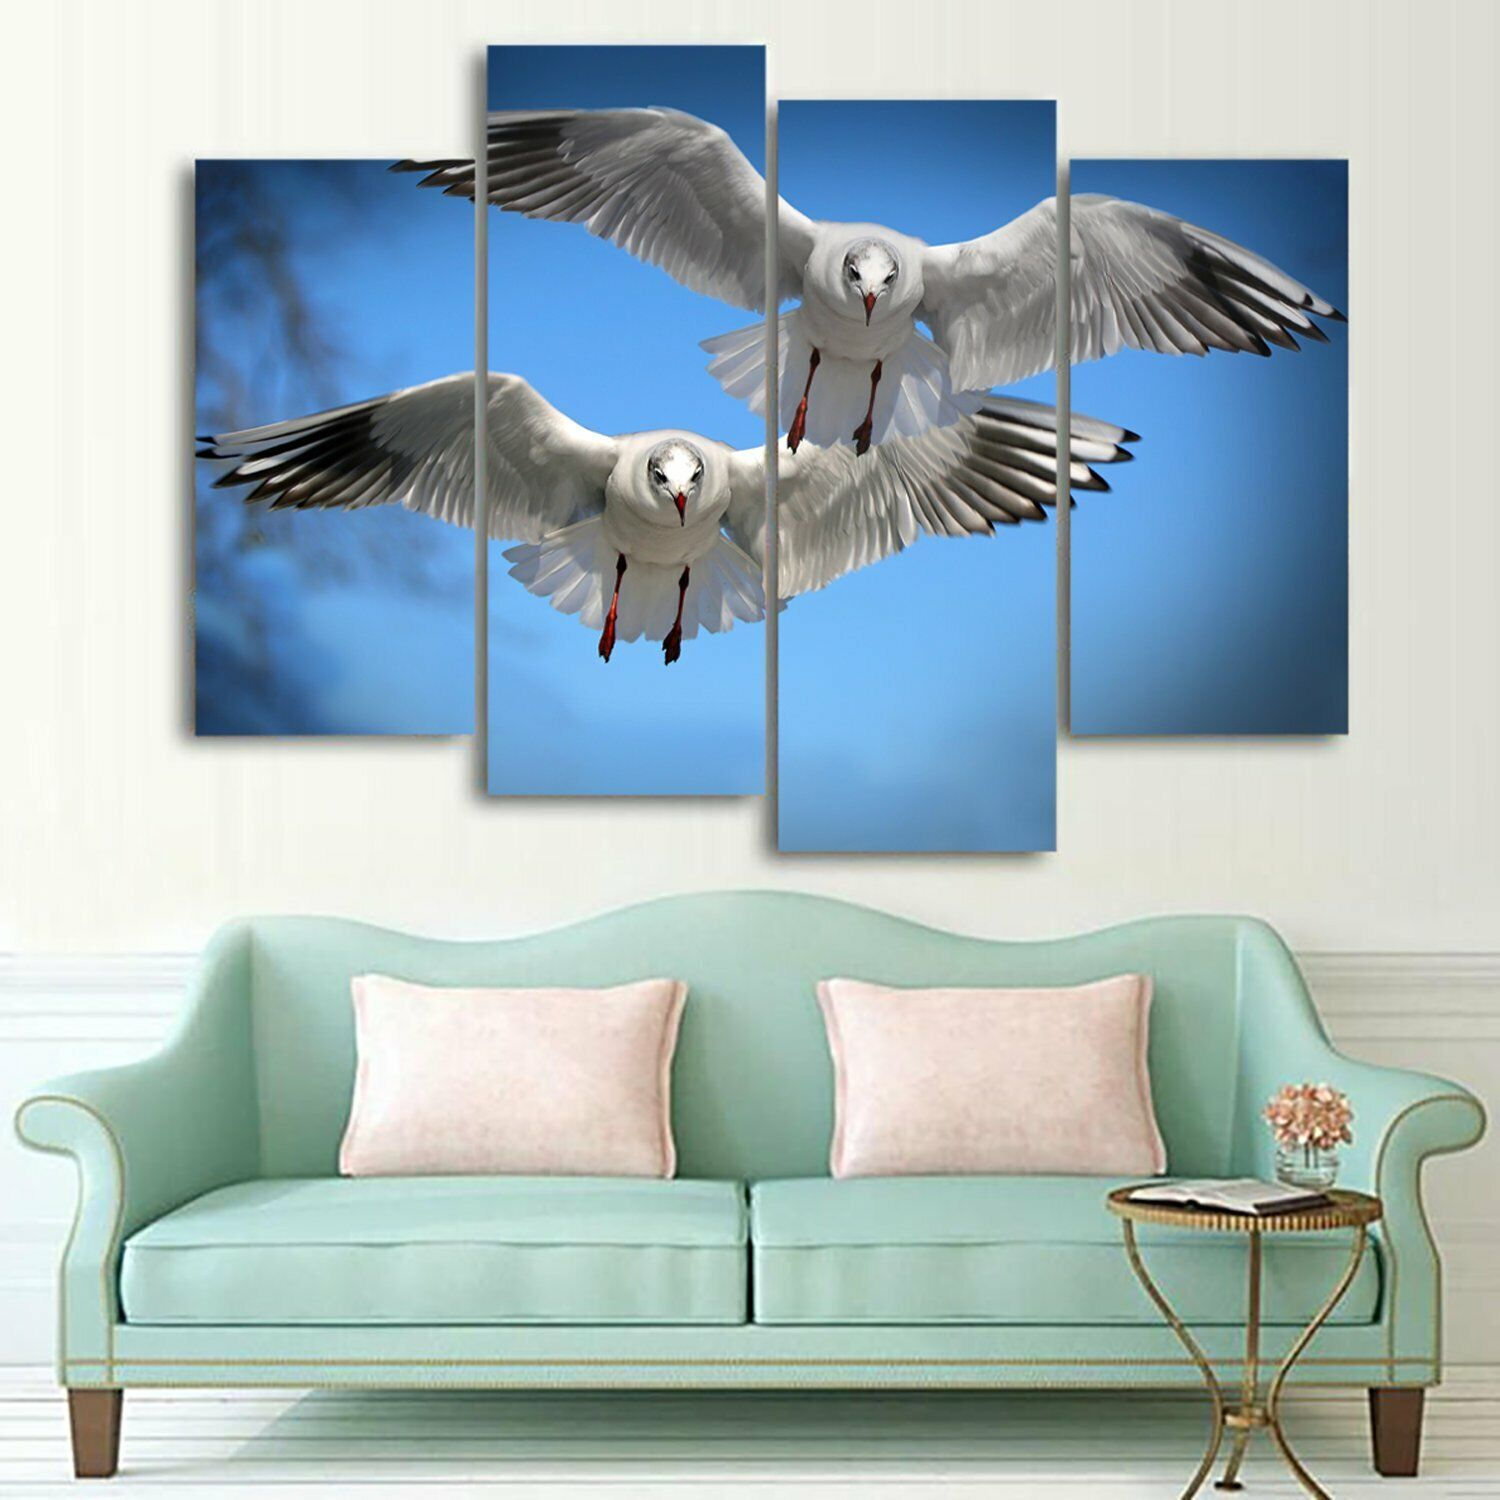 Bird Images Pictures Of Birds Wallpaper Mural Decoration Design Artwork Poster C